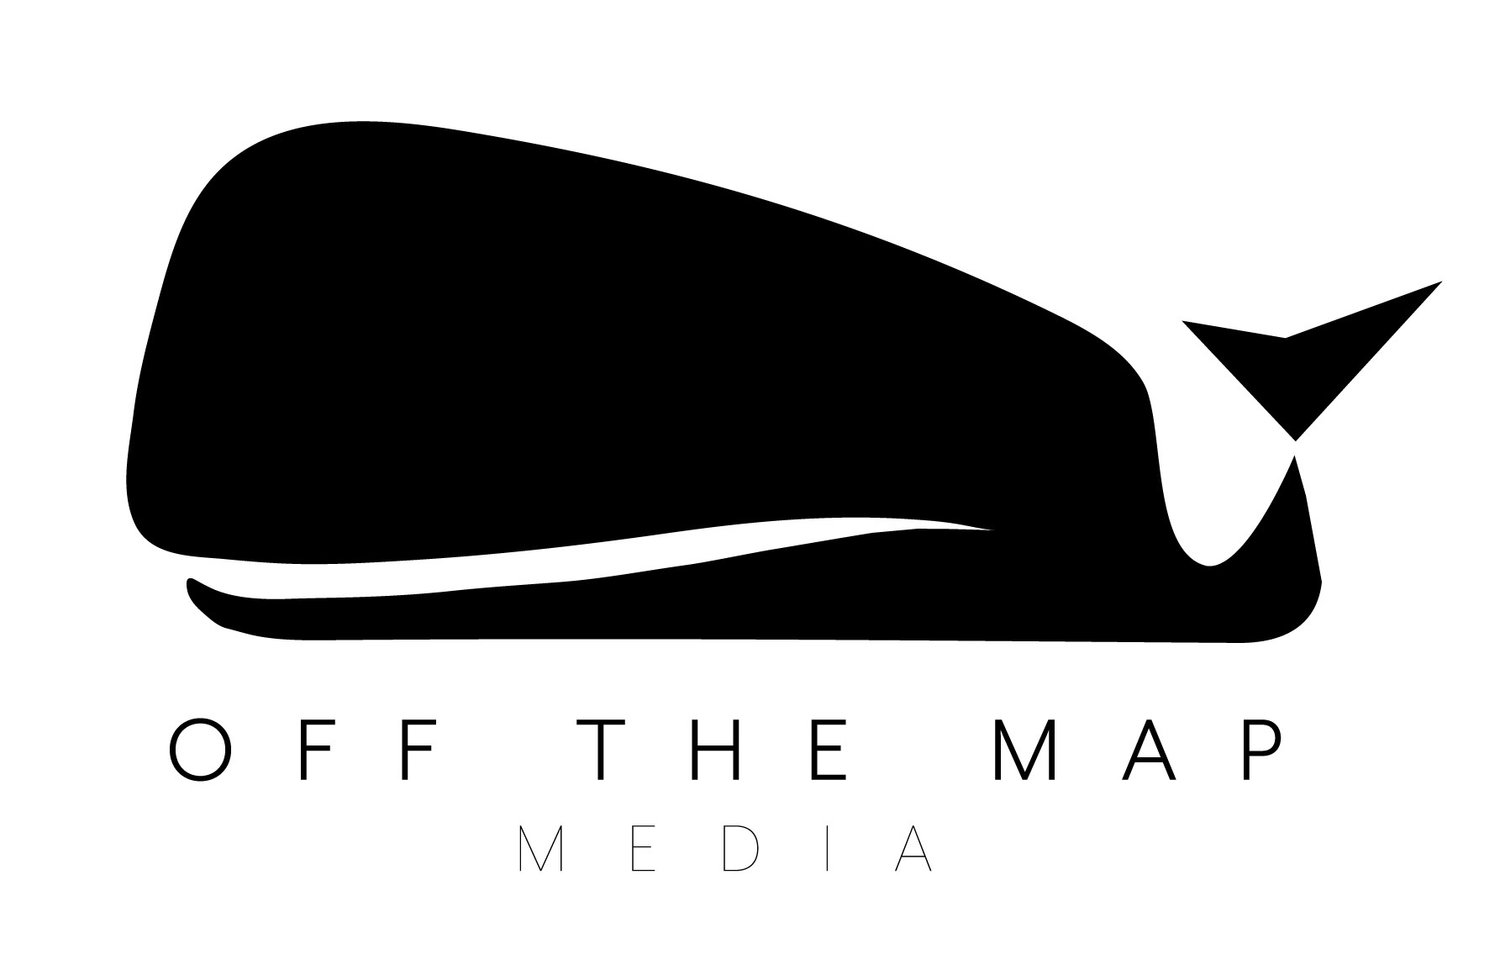 OFF THE MAP MEDIA